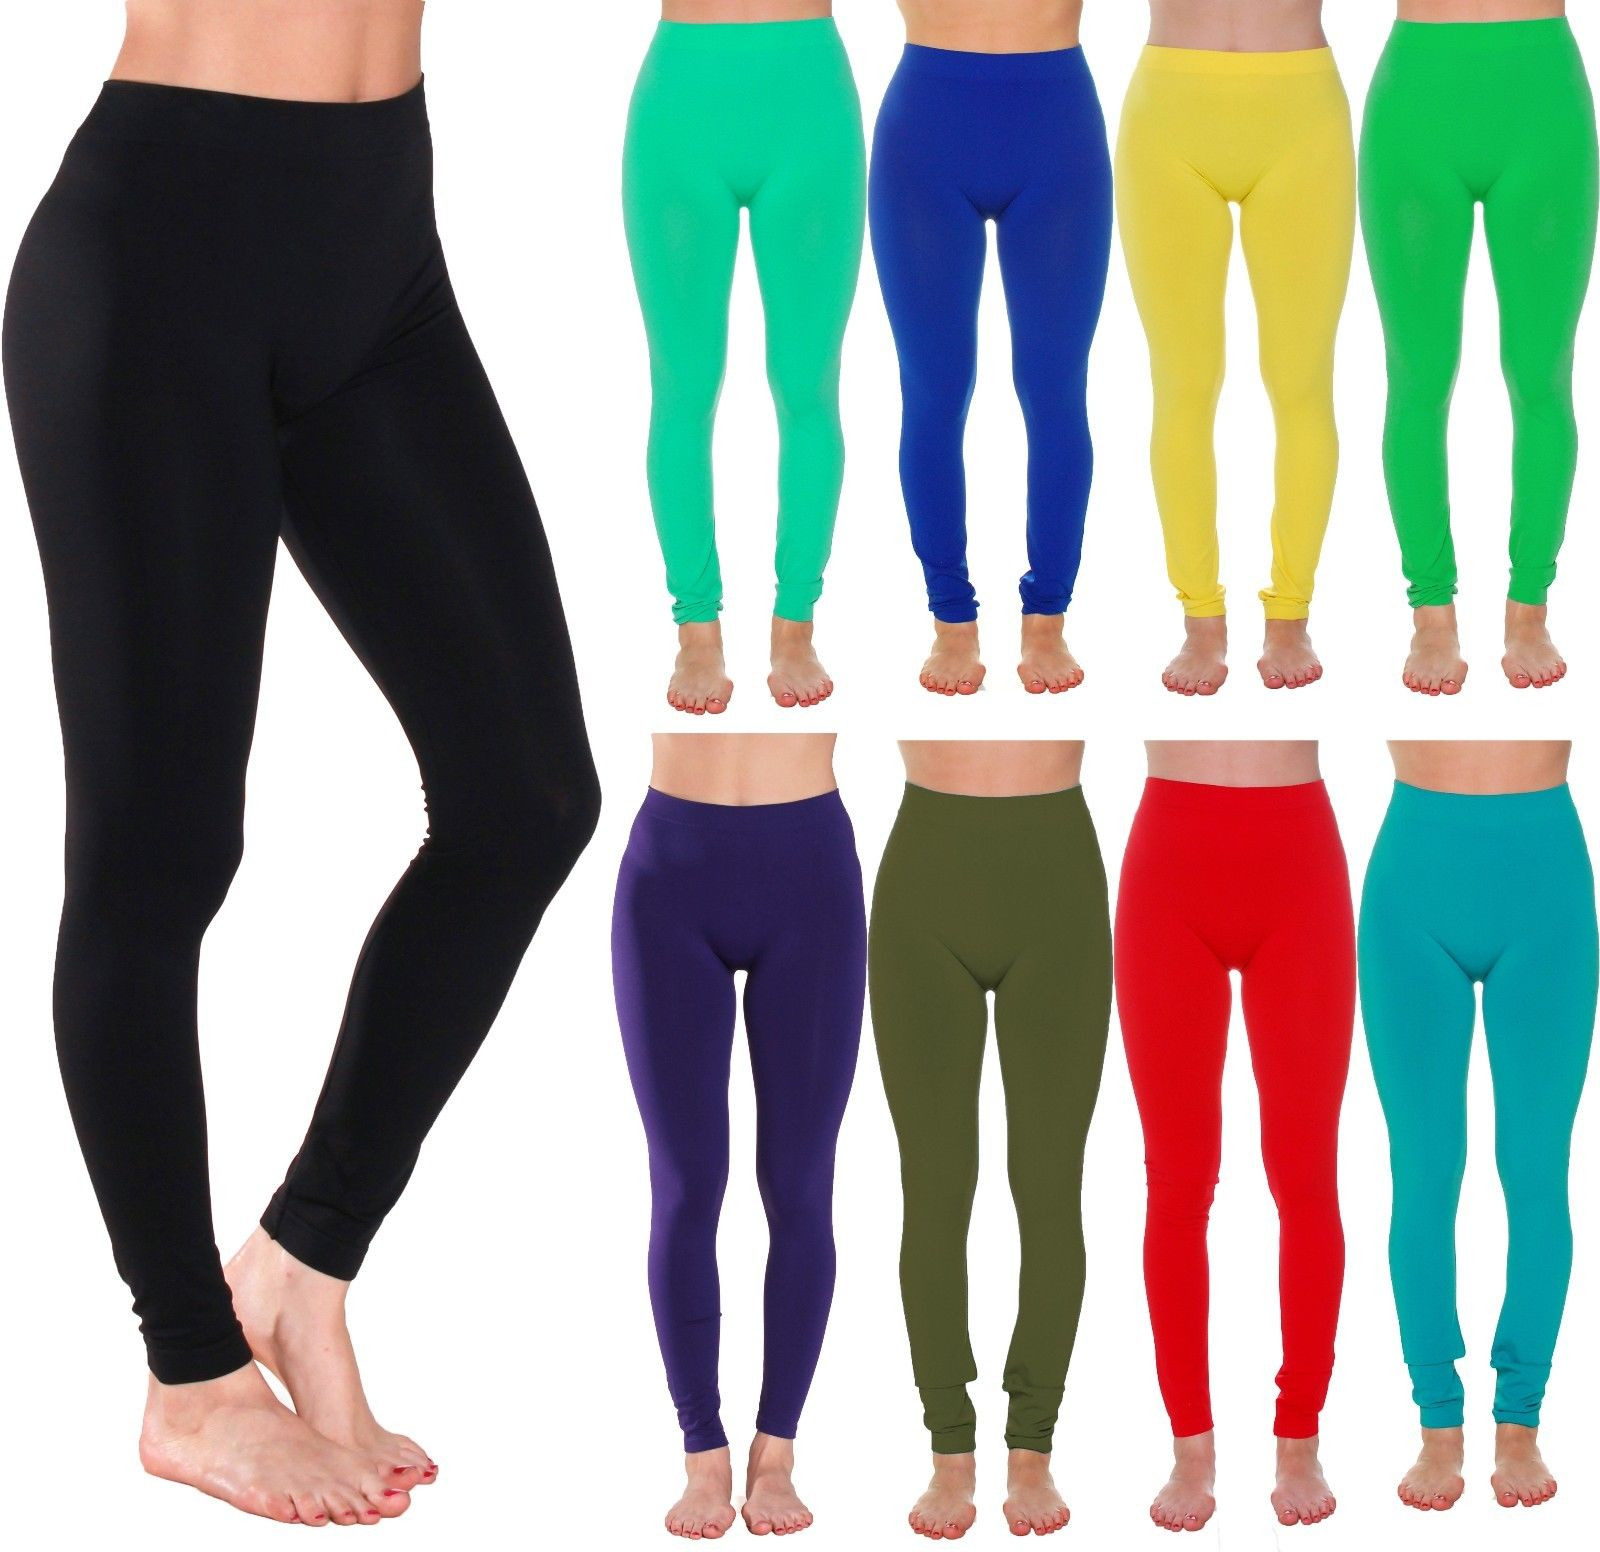 Women/'s Seamless Fleece Lined Leggings Fitted Stretchy Workout Pants One Size